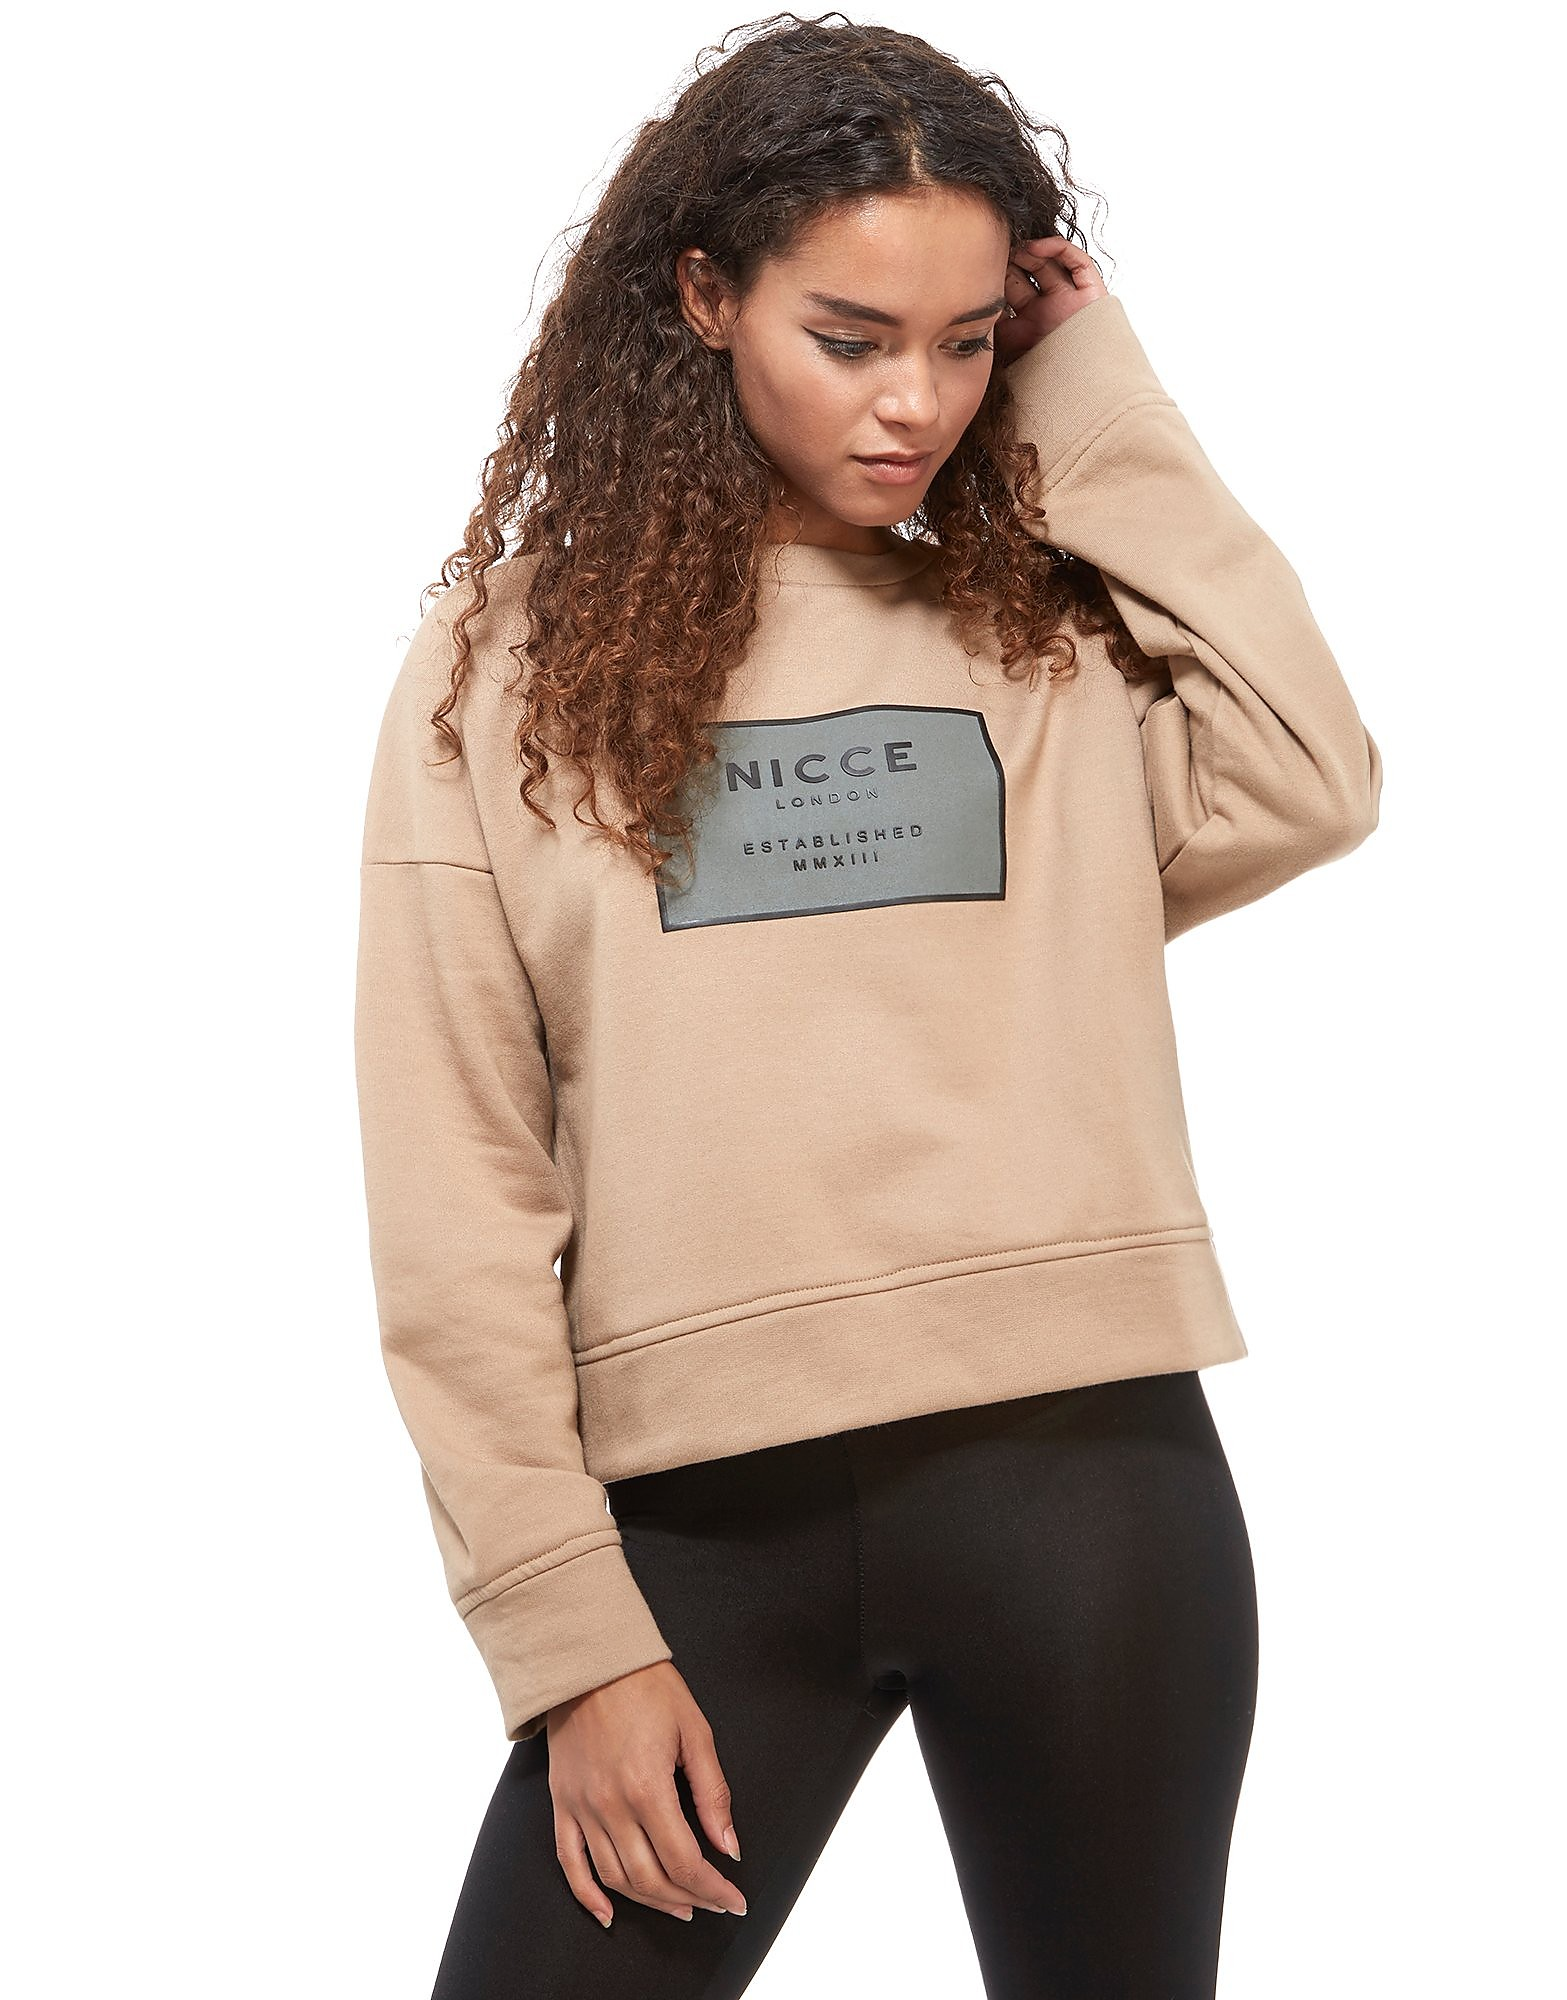 Nicce Box Logo Cropped Sweatshirt